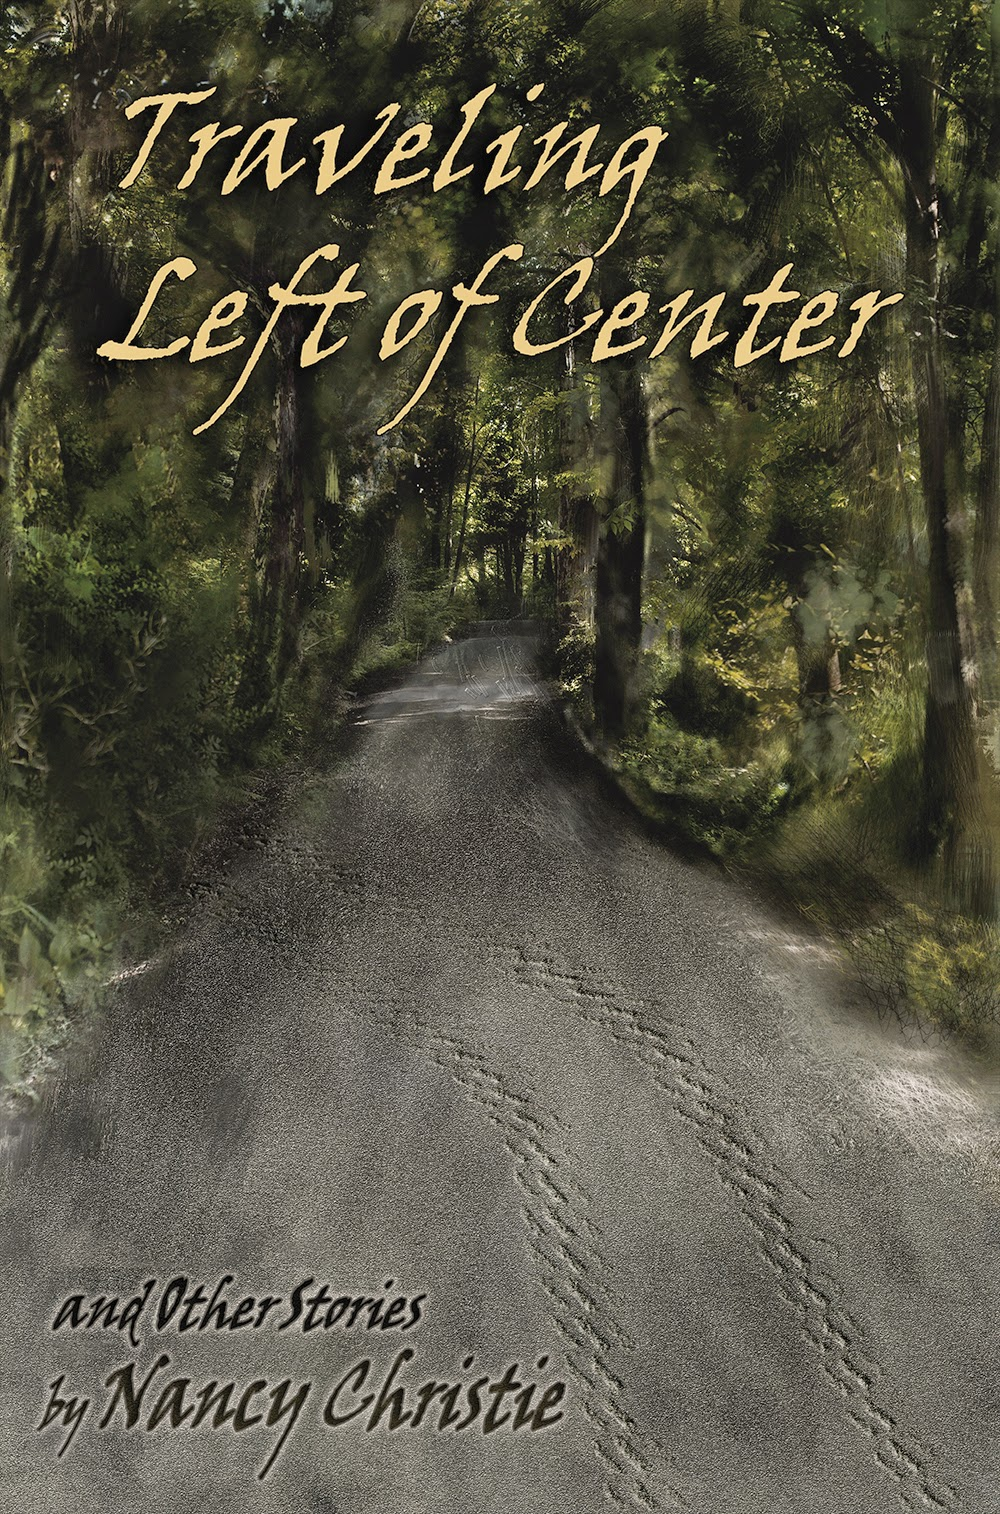 http://www.amazon.com/Traveling-Left-Center-Other-Stories-ebook/dp/B00M2AAHFO/ref=la_B001K8GBYK_1_2?s=books&ie=UTF8&qid=1421445427&sr=1-2